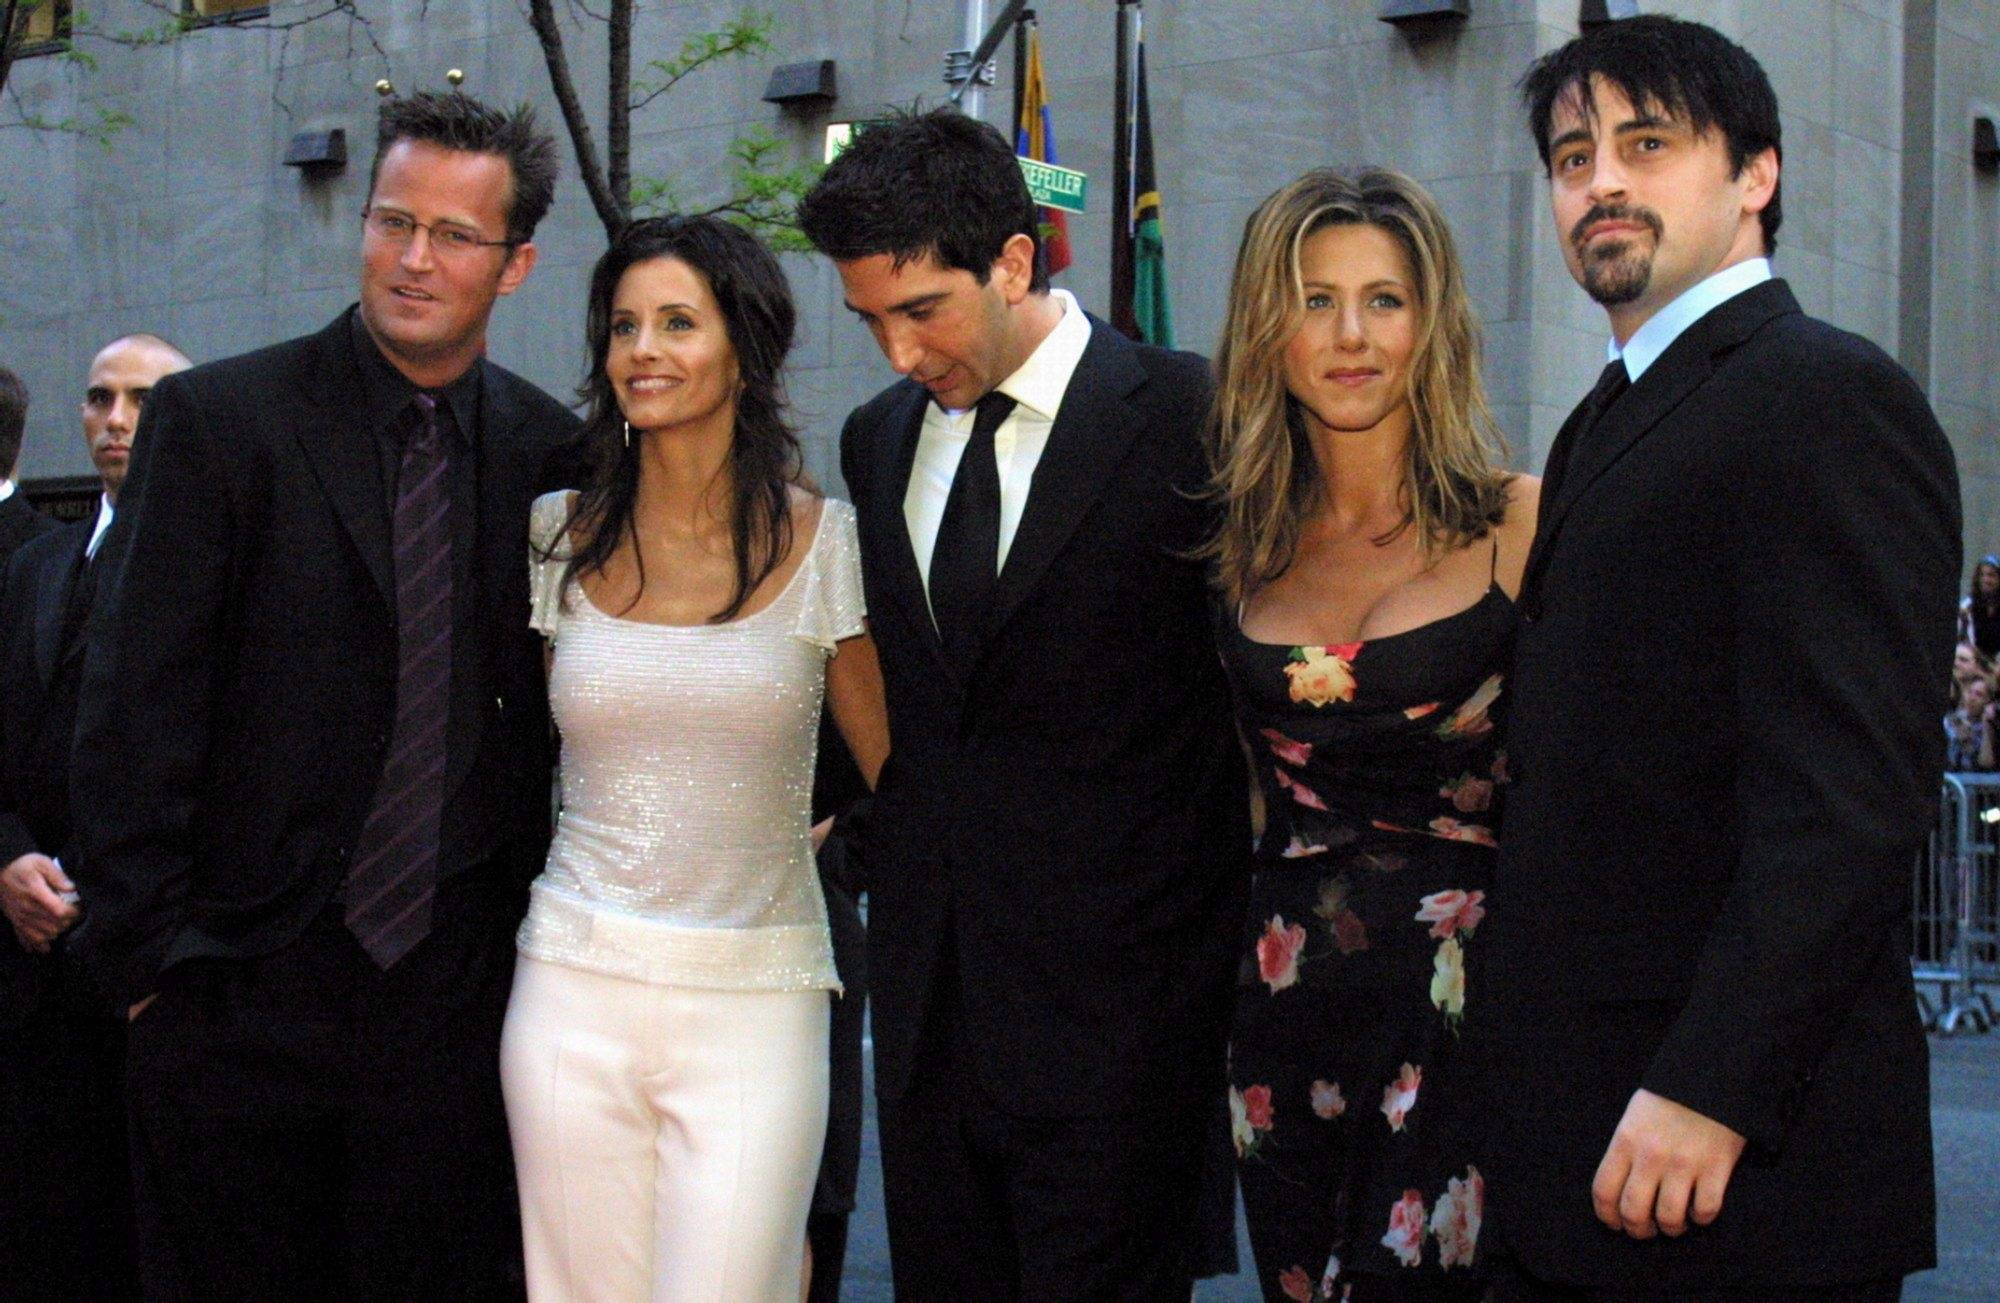 """In this May 5, 2002 file photo, the cast members, Matthew Perry, from left, Courteney Cox Arquettte, David Schwimmer, Jennifer Aniston and Matt LeBlanc of the television show """"Friends,"""" arrive at New York's Rockefeller Center for NBC's 75th Anniversary event. (AP Photo/Tina Fineberg, File)"""